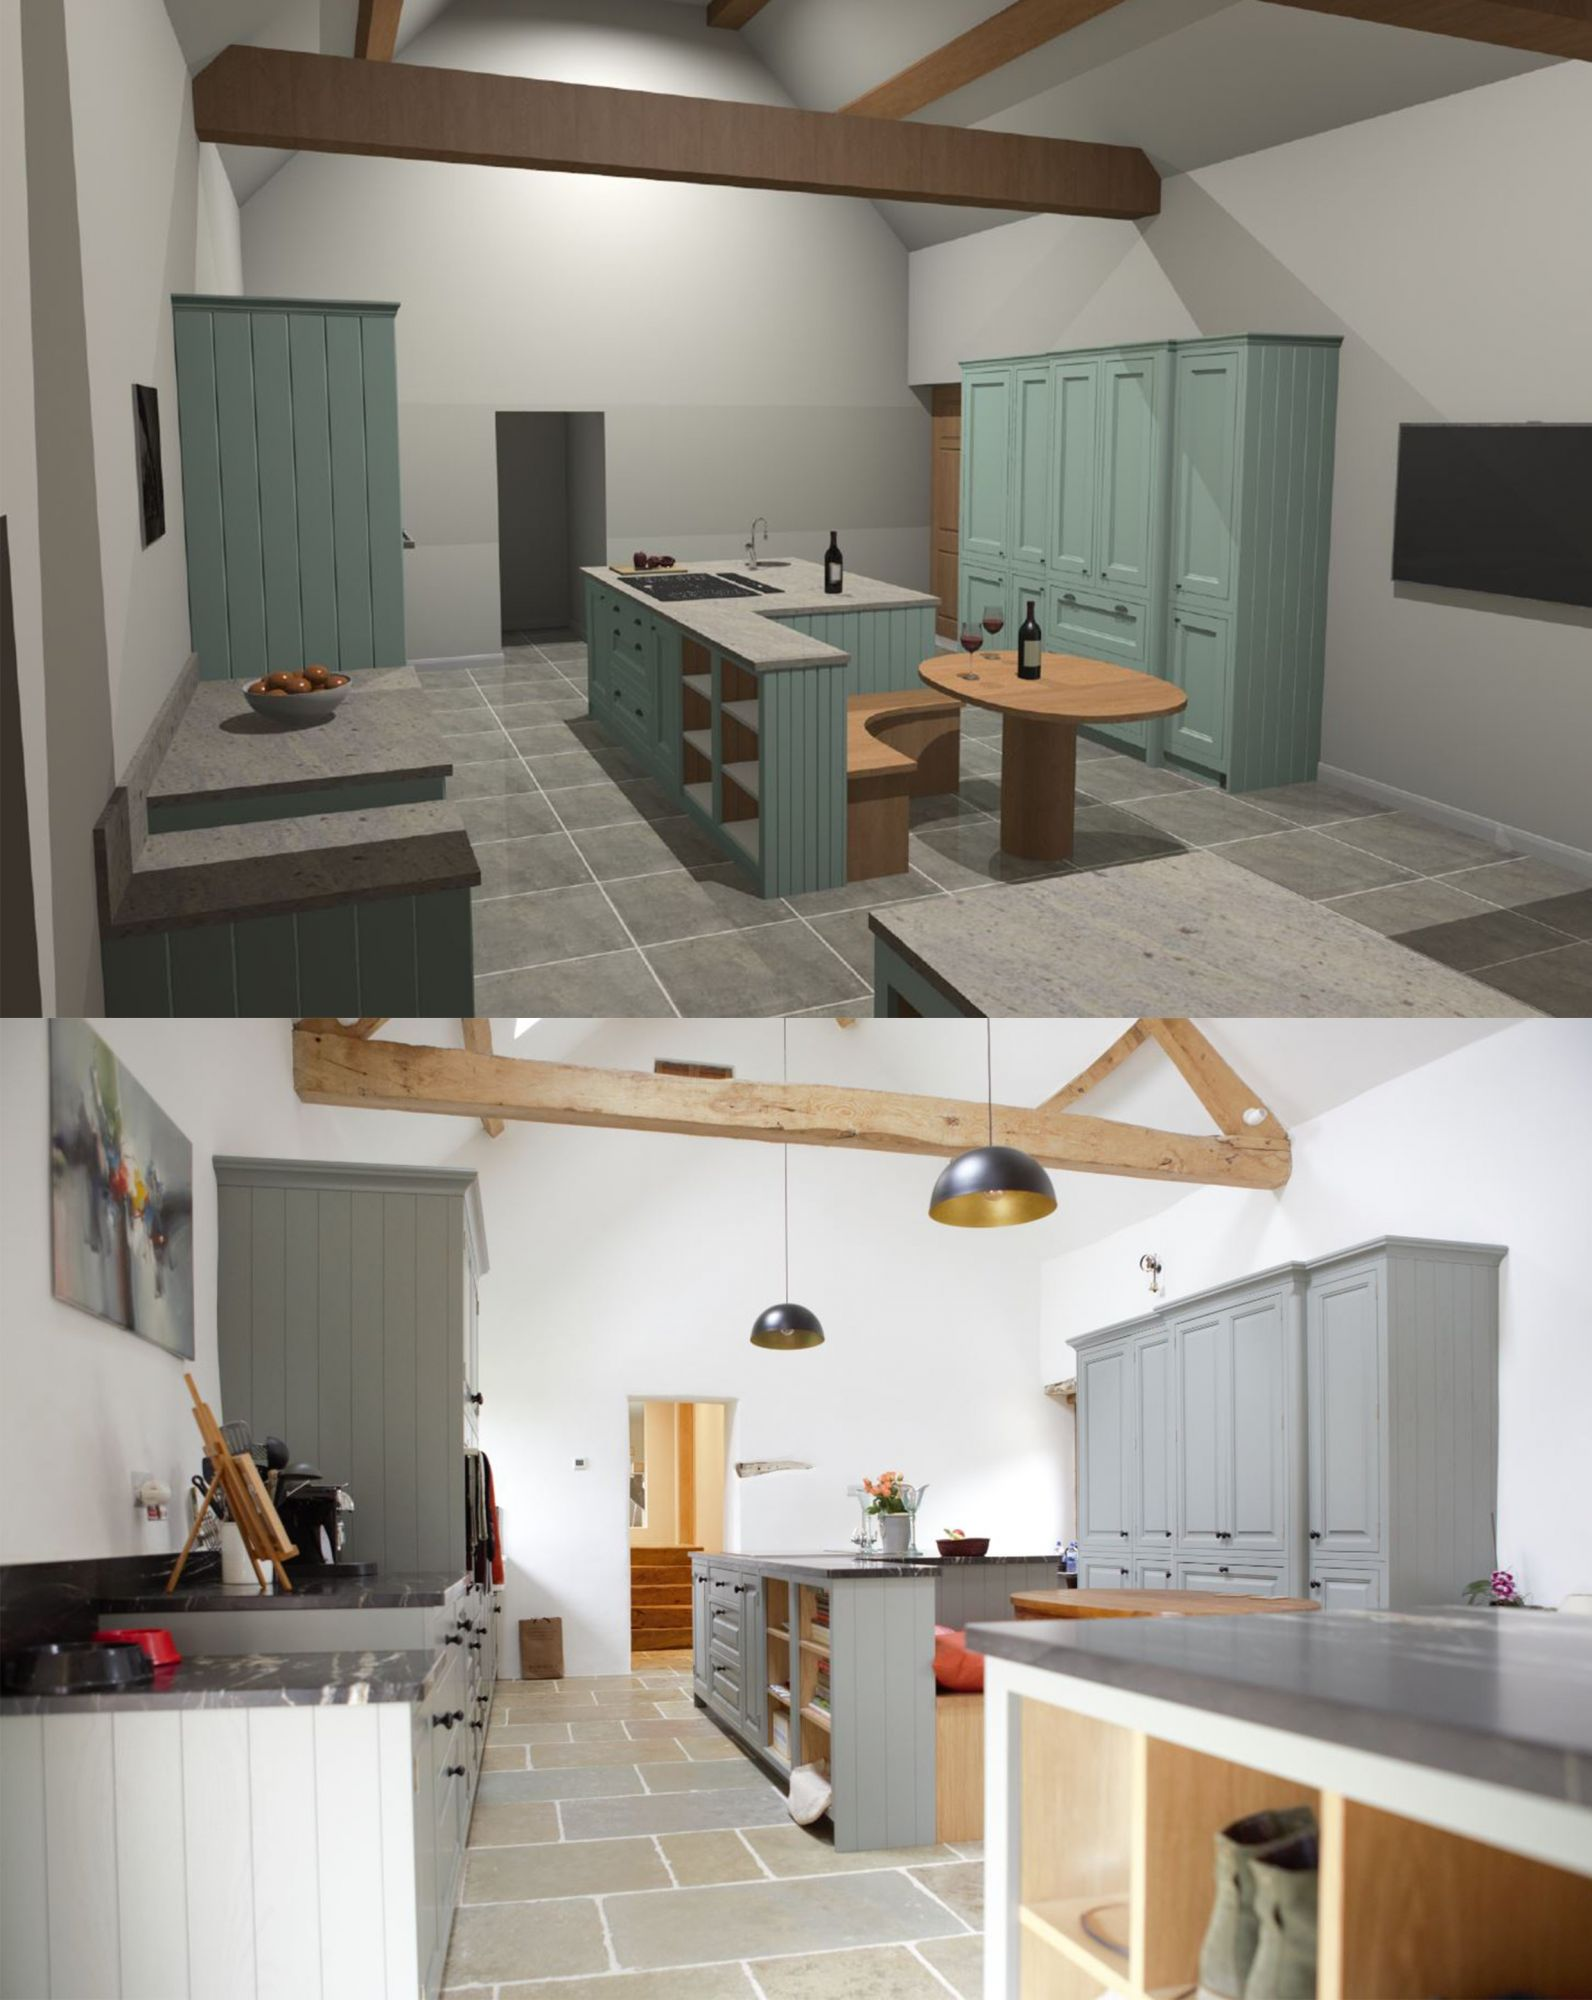 2 images of a kitchen